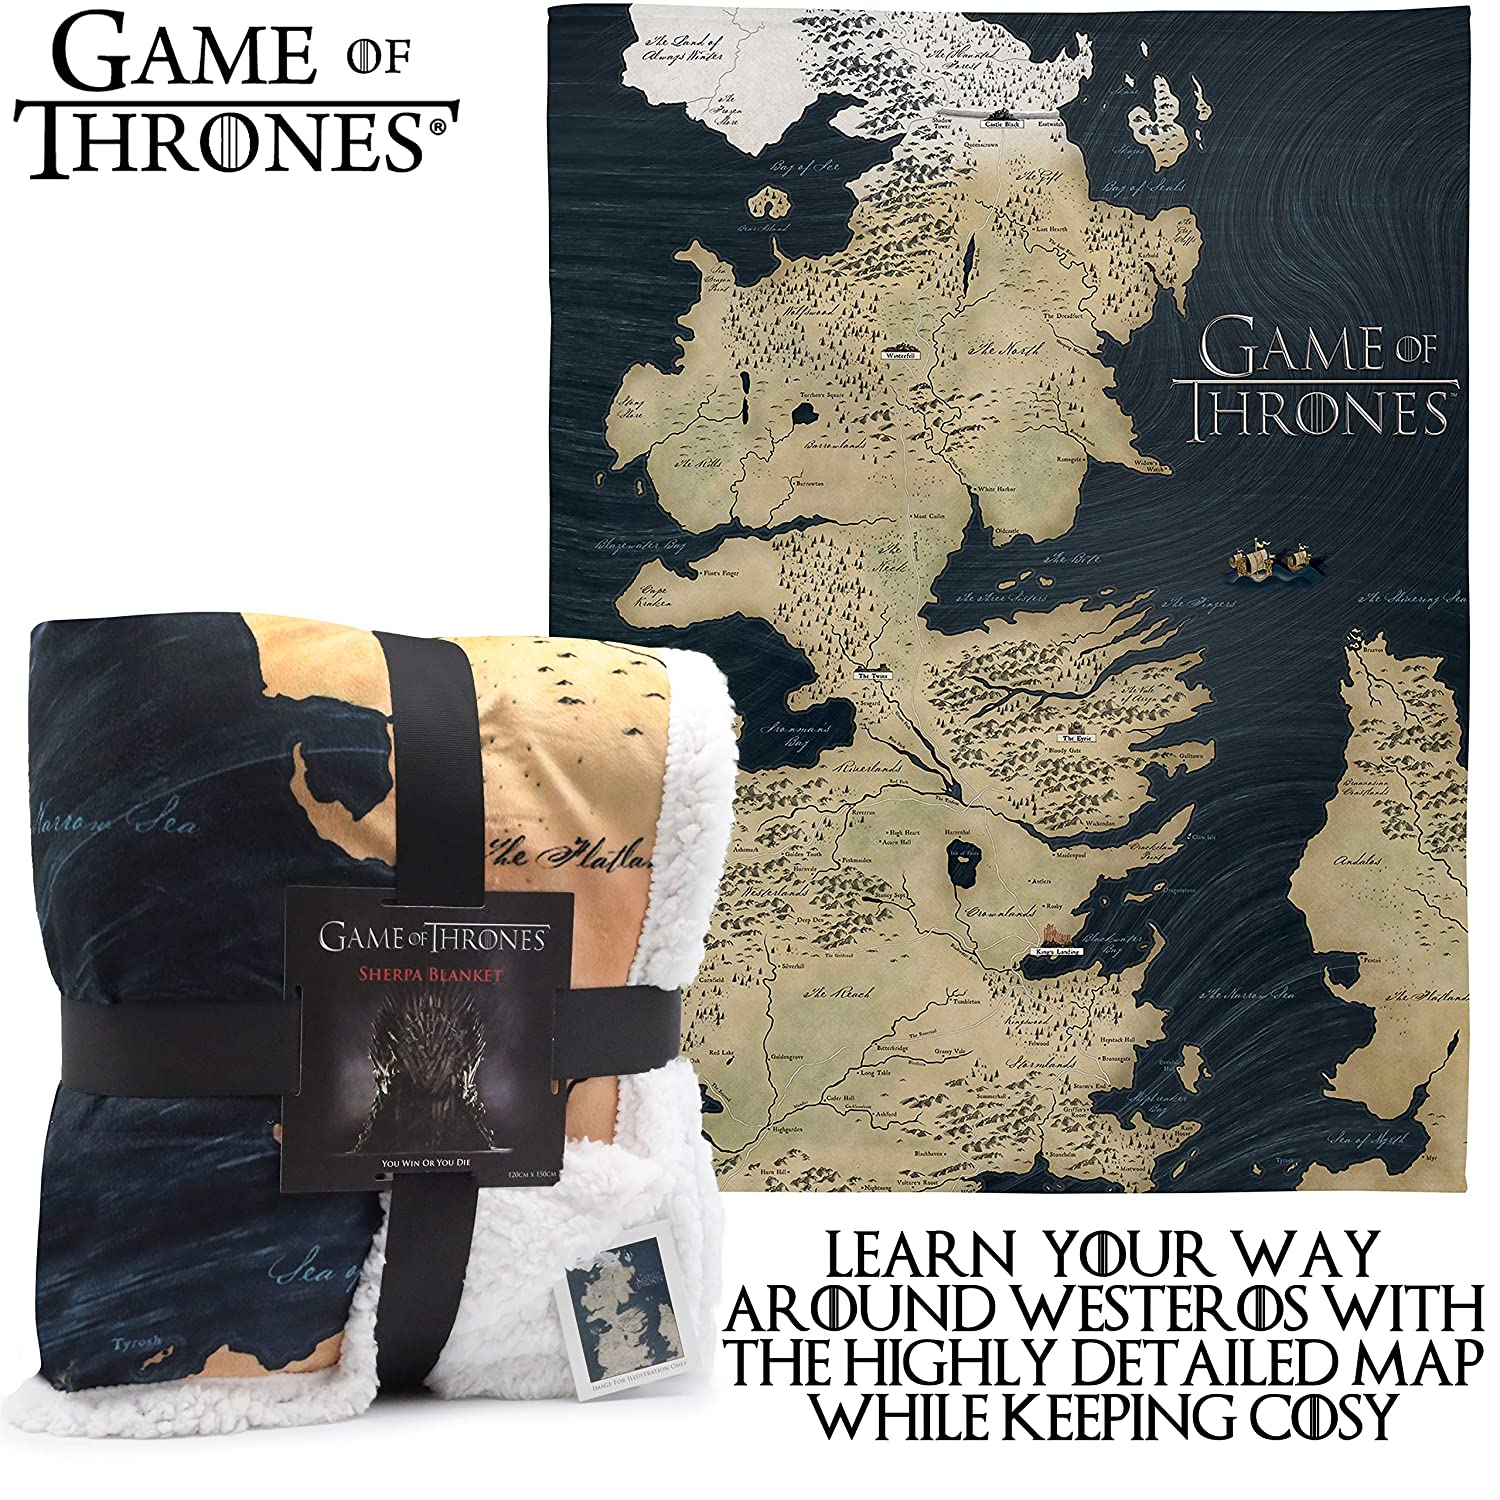 Game of Thrones Gifts Map of Westeros Sherpa Blanket GOT Merchandise Super Soft Throw Blanket Reversible Throw With White Fluffy Fleece And Large Westeros Map Design